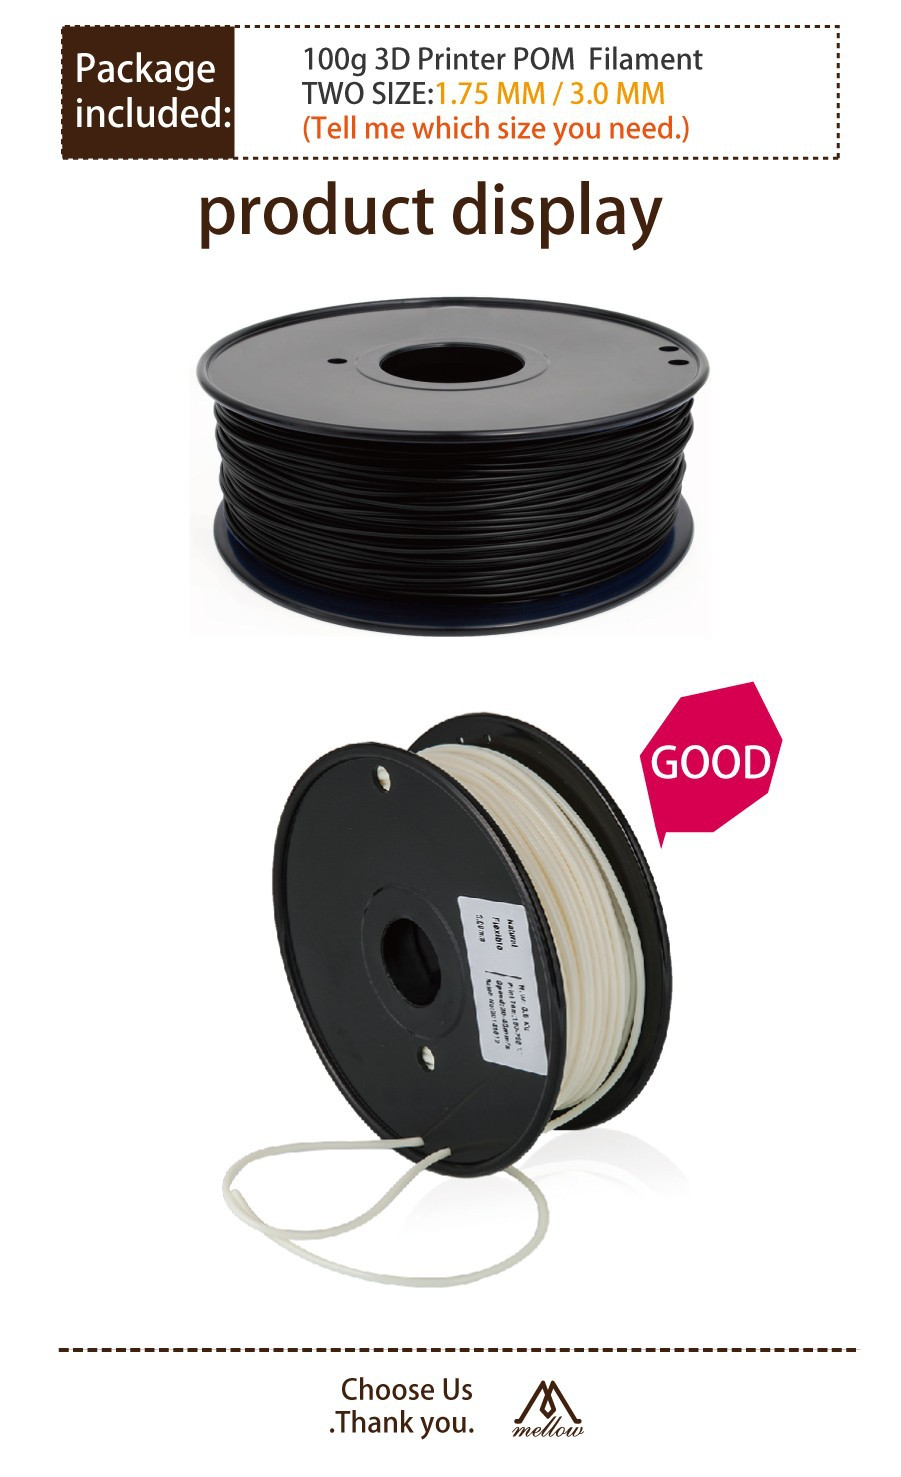 3D Printer Filament - POM 1